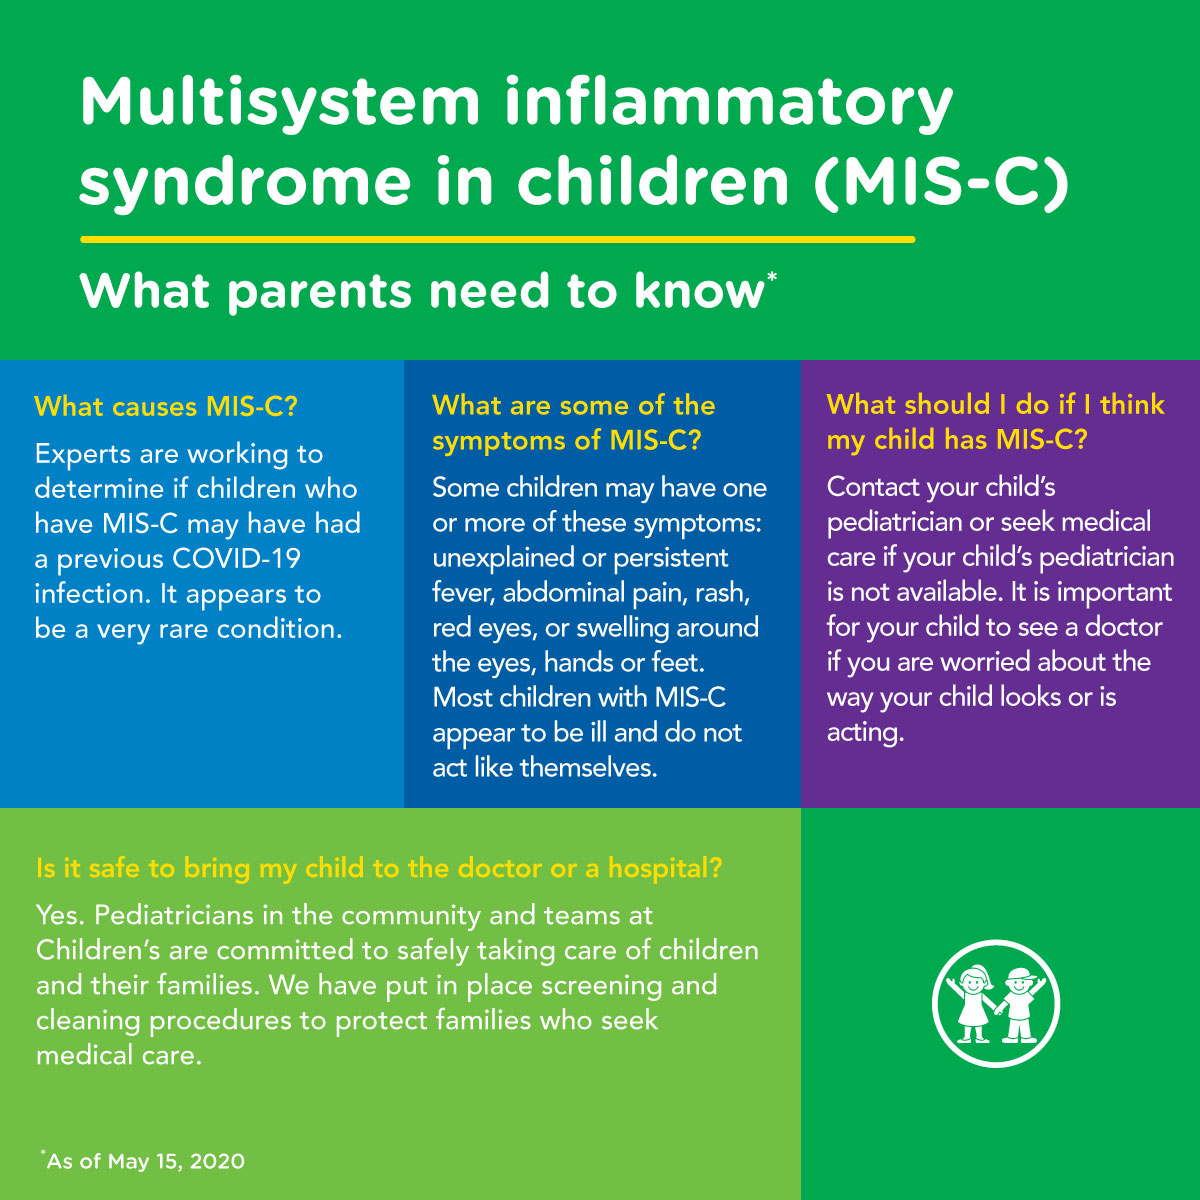 Multisystem inflammatory syndrome in children (MIS-C) is a rare condition that has recently been in the headlines. Pediatric experts, including those on our team, are working to understand whether or not some affected children may have had a previous COVID-19 infection.